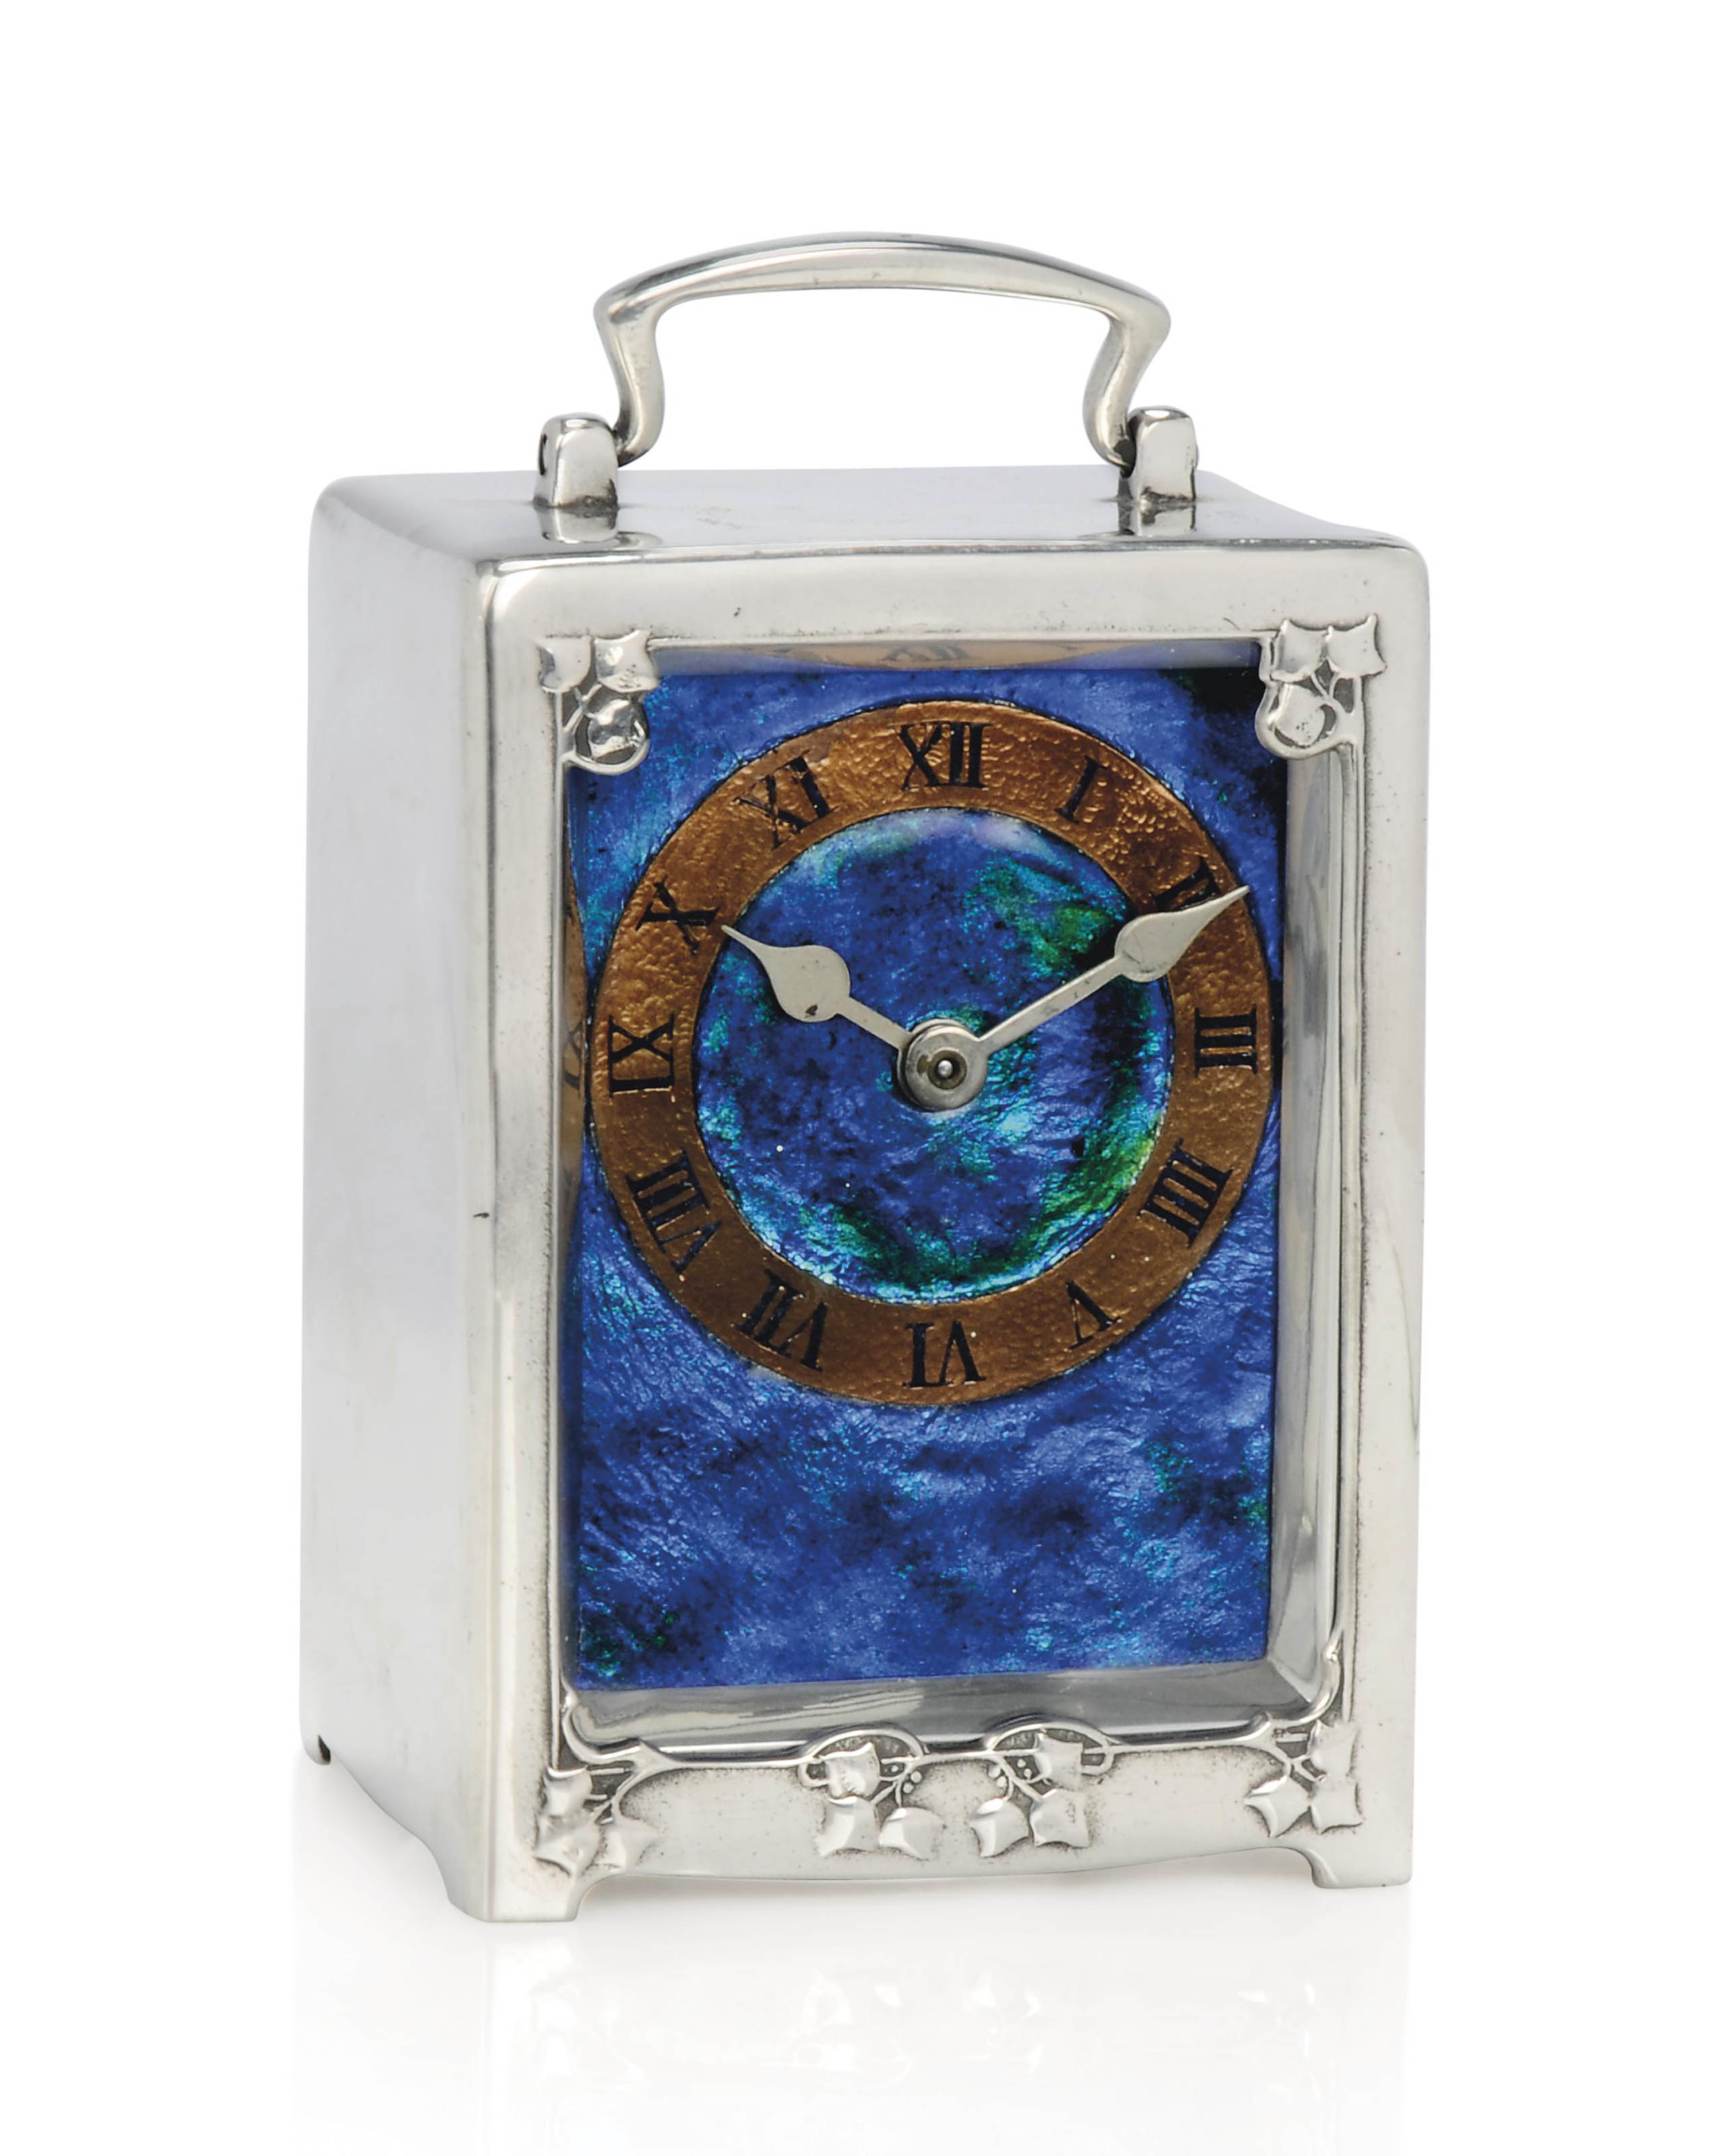 AN ARCHIBALD KNOX, ATTRIBUTED, FOR LIBERTY & CO 'TUDRIC' PEWTER, ENAMEL AND COPPER TIMEPIECE